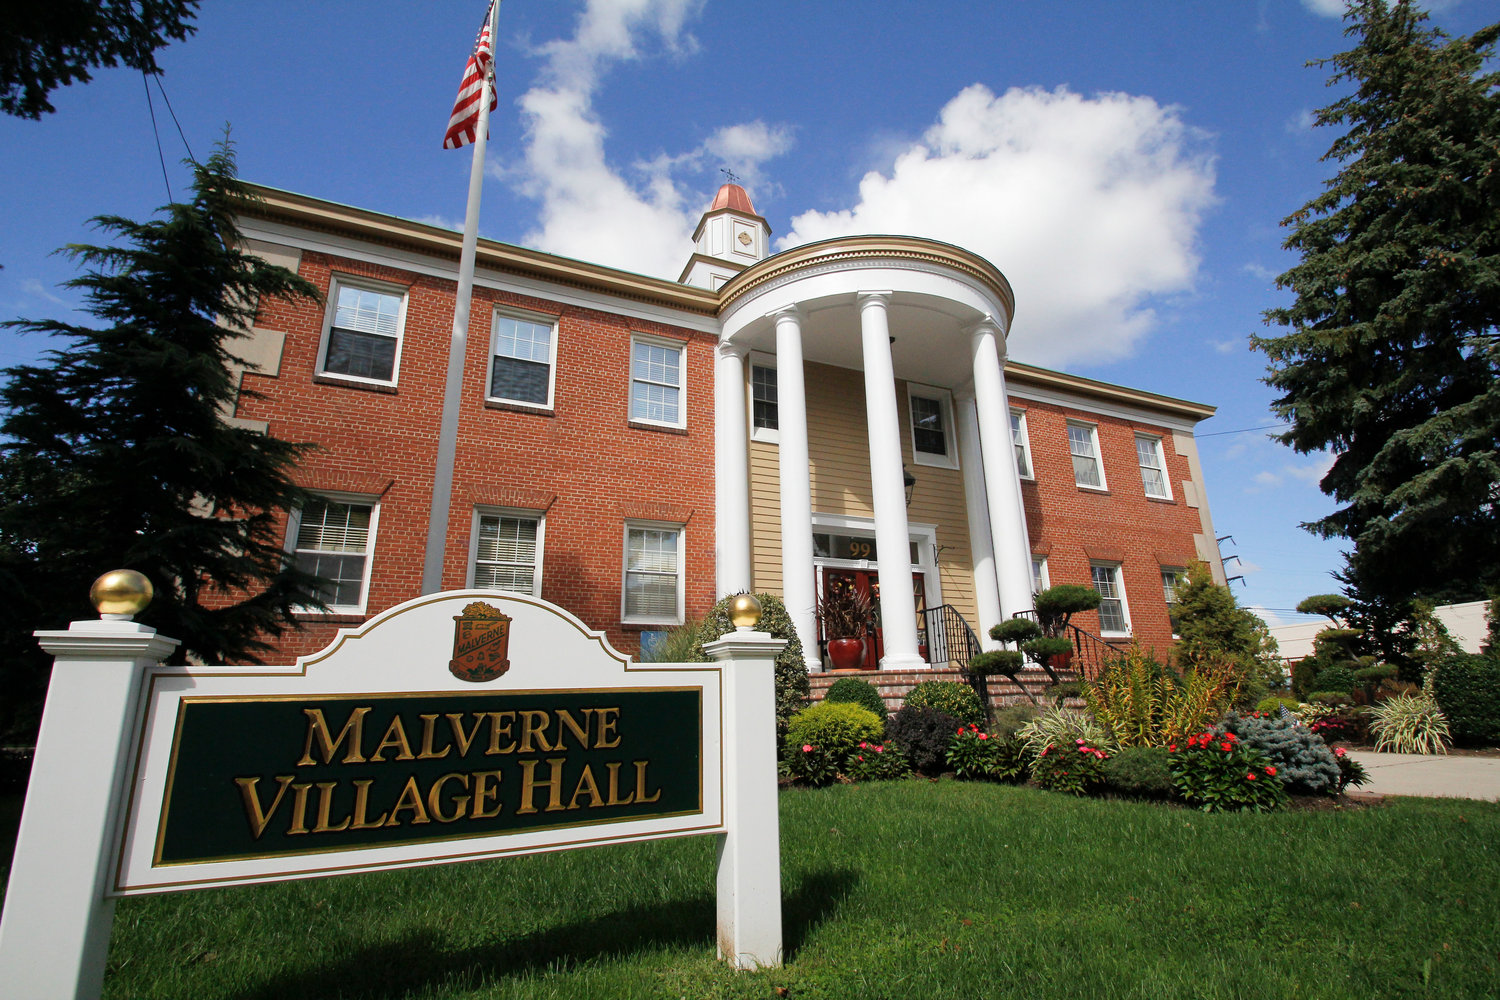 Malverne's village election will take place on Tuesday, March 19.